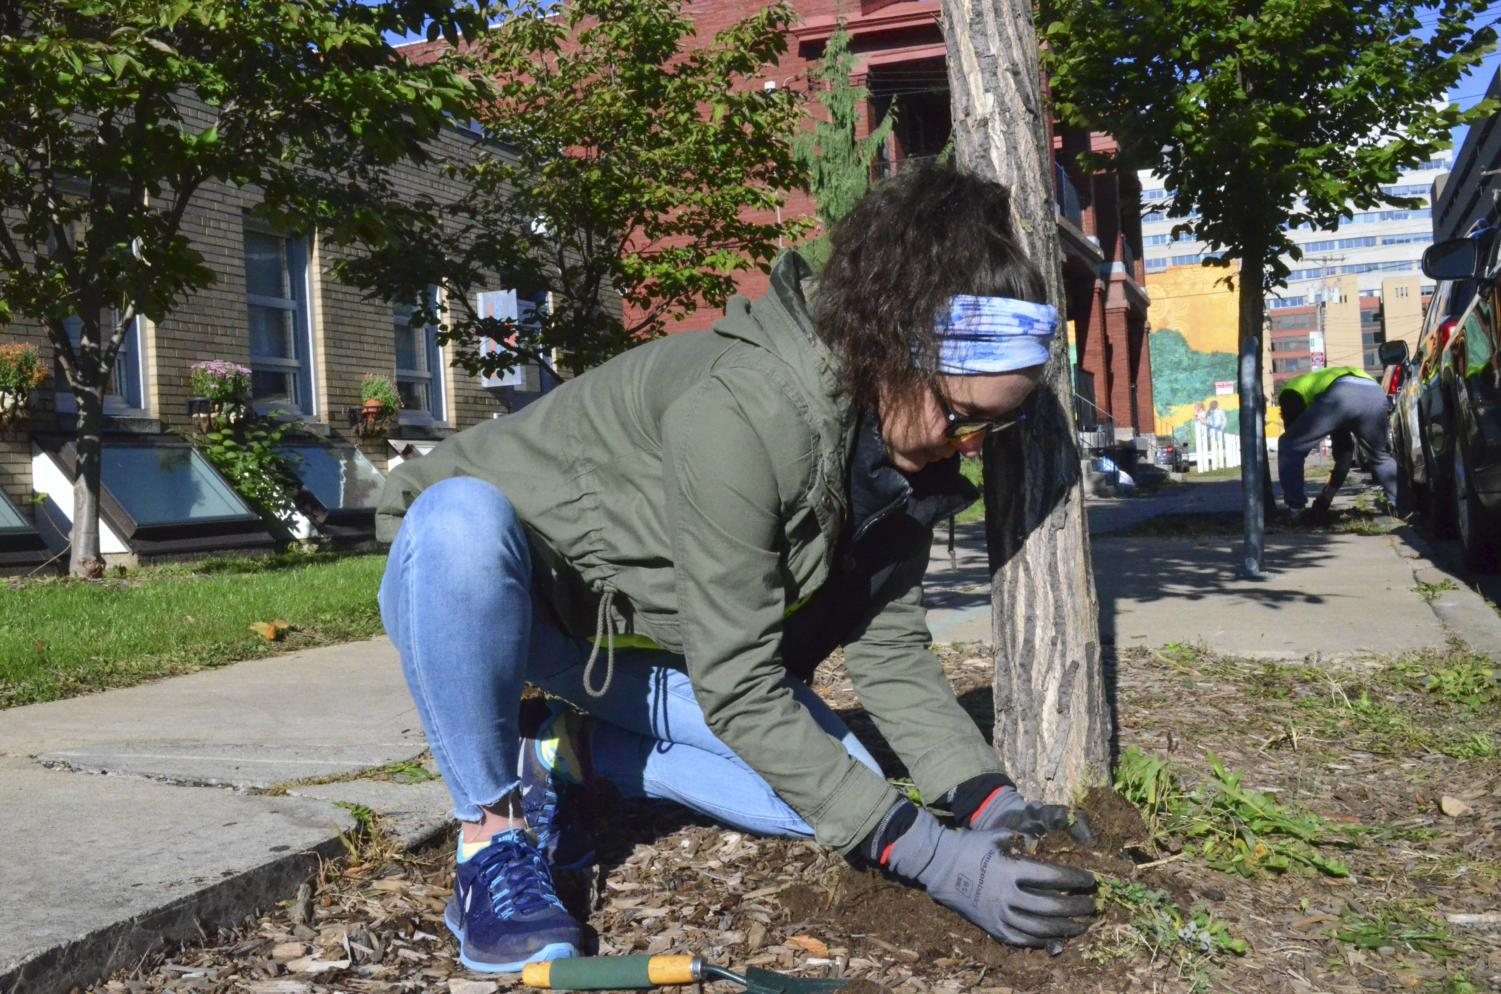 Junior nursing major Ashley Van Slyke helps with landscaping outside the Oakland Career Center as a part of Pitt Make a Difference Day on Saturday.